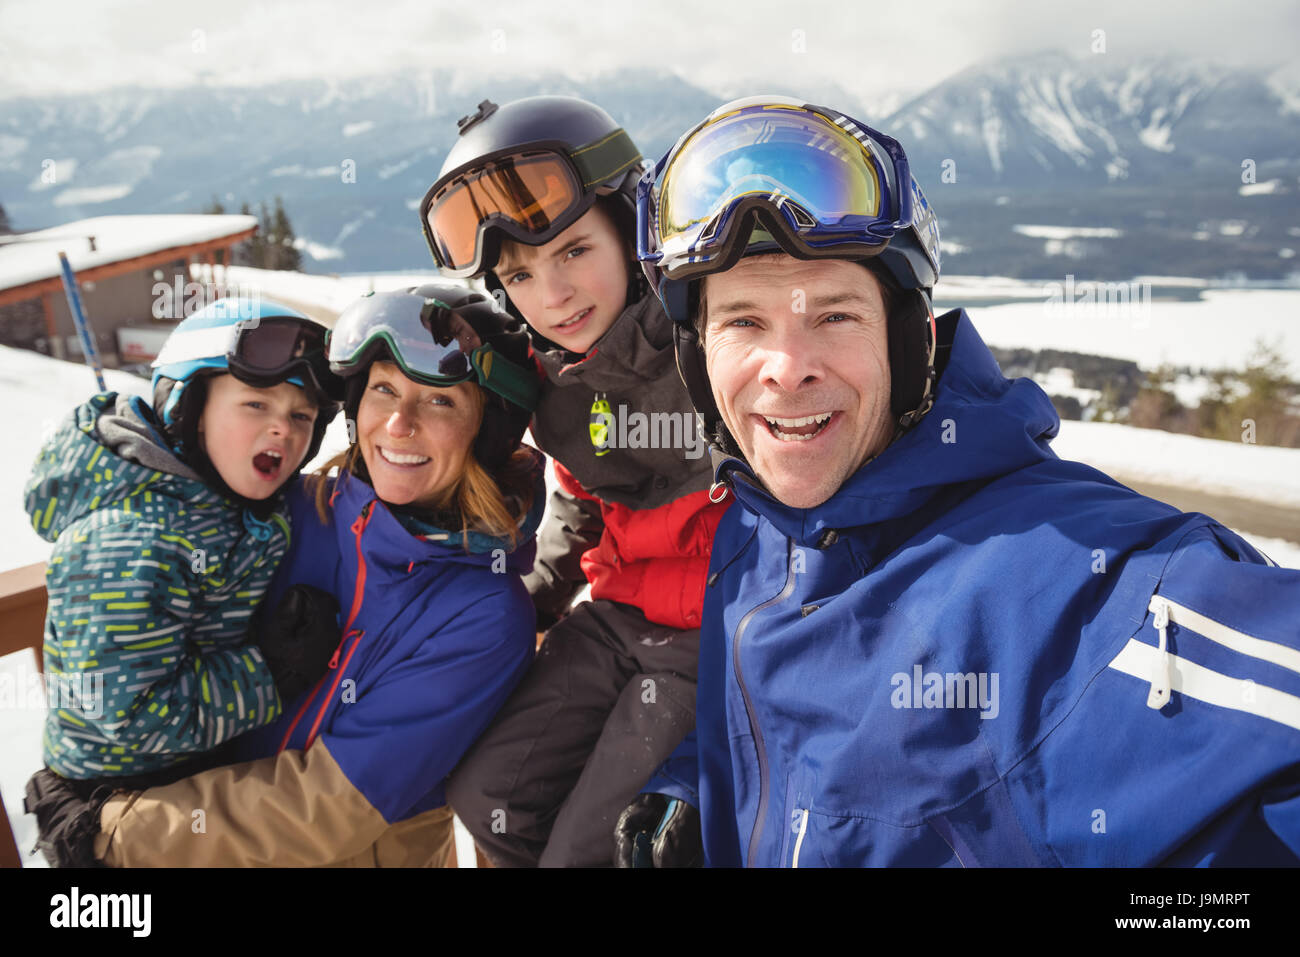 Portrait of happy family in skiwear during winter - Stock Image